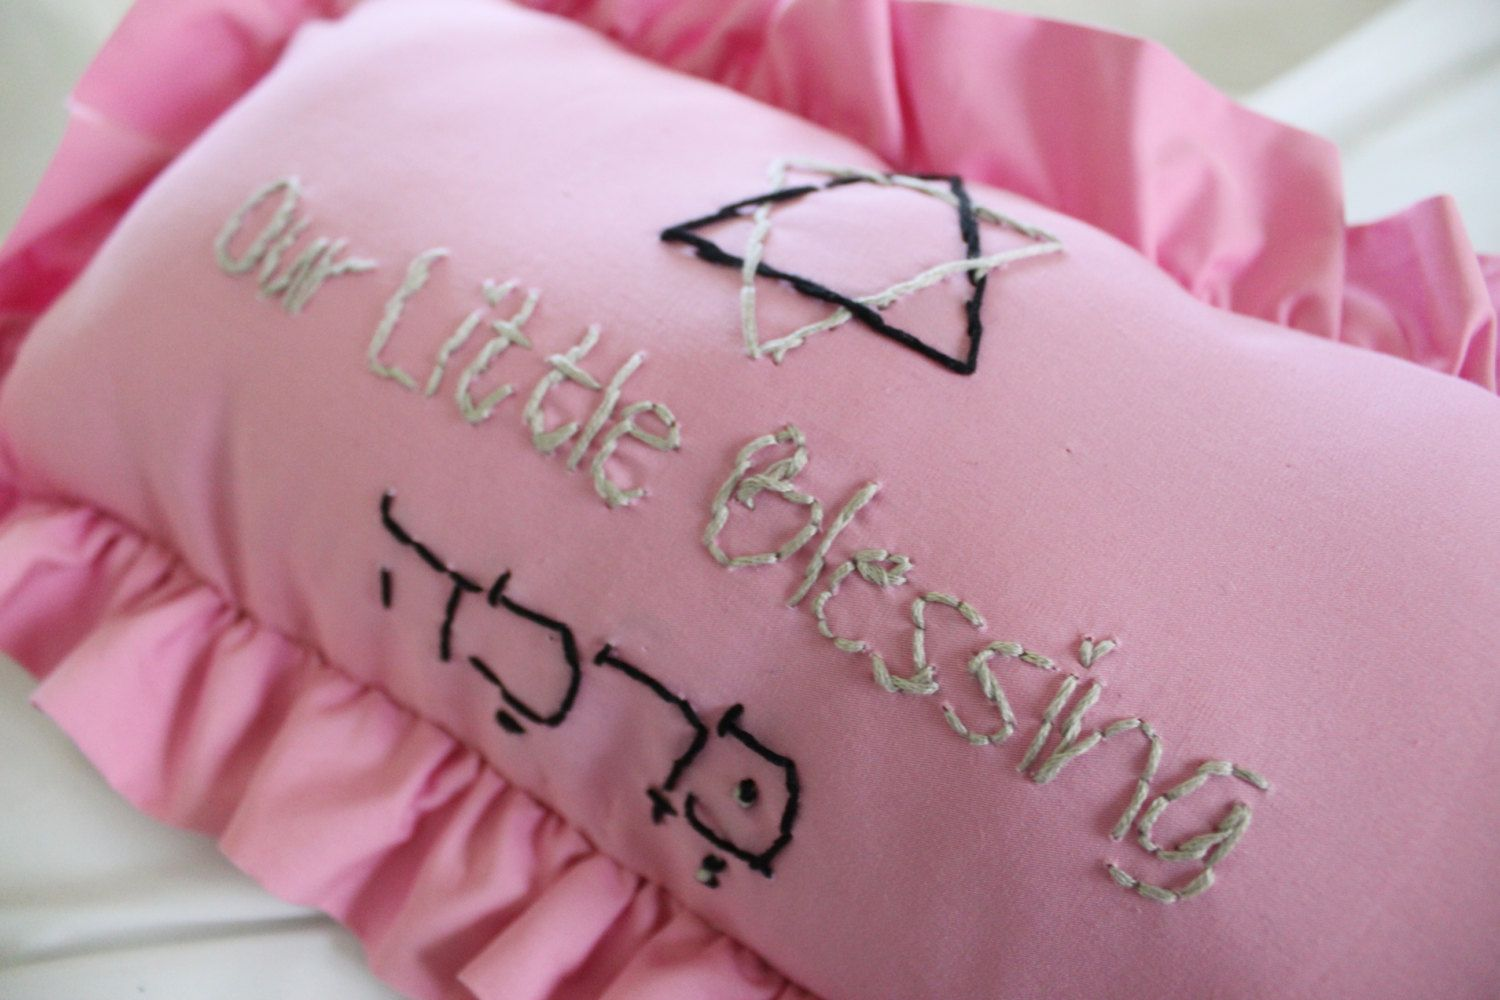 Jewish baby pillow hebrew baby pillow embroidered baby pillow jewish baby pillow hebrew baby pillow embroidered baby pillow custom baby pillow negle Images